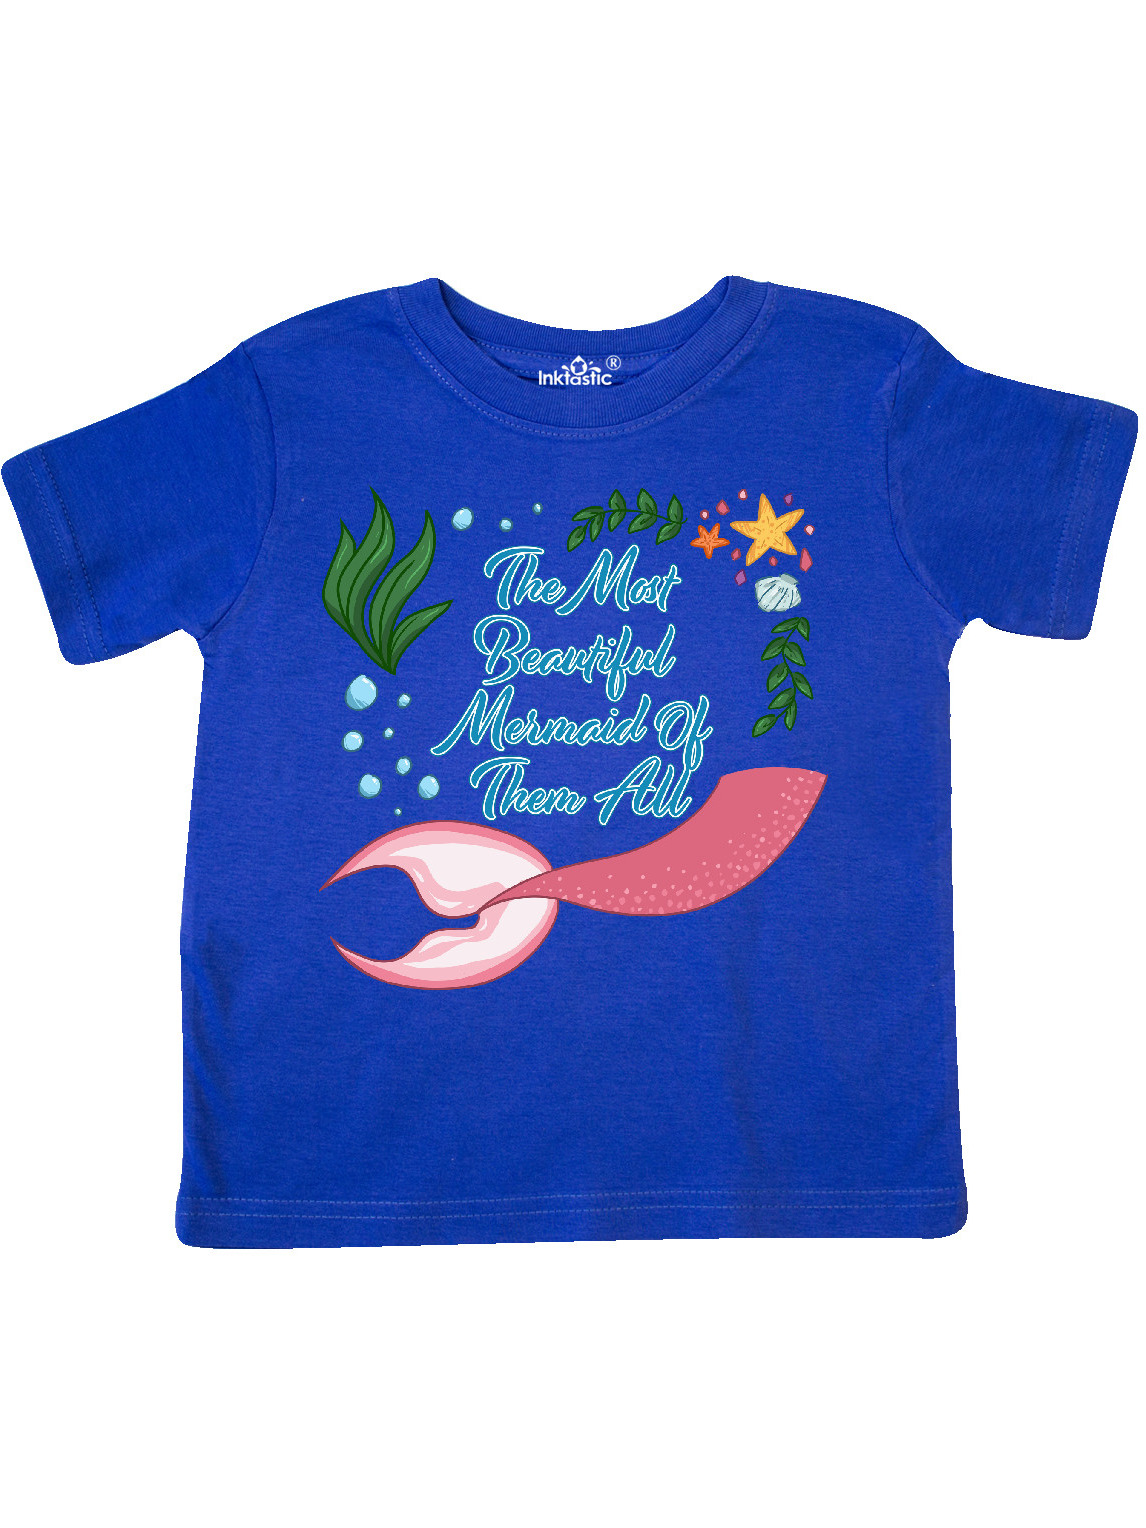 inktastic The Most Beautiful Mermaid of Them Baby T-Shirt 18 Months Light Blue